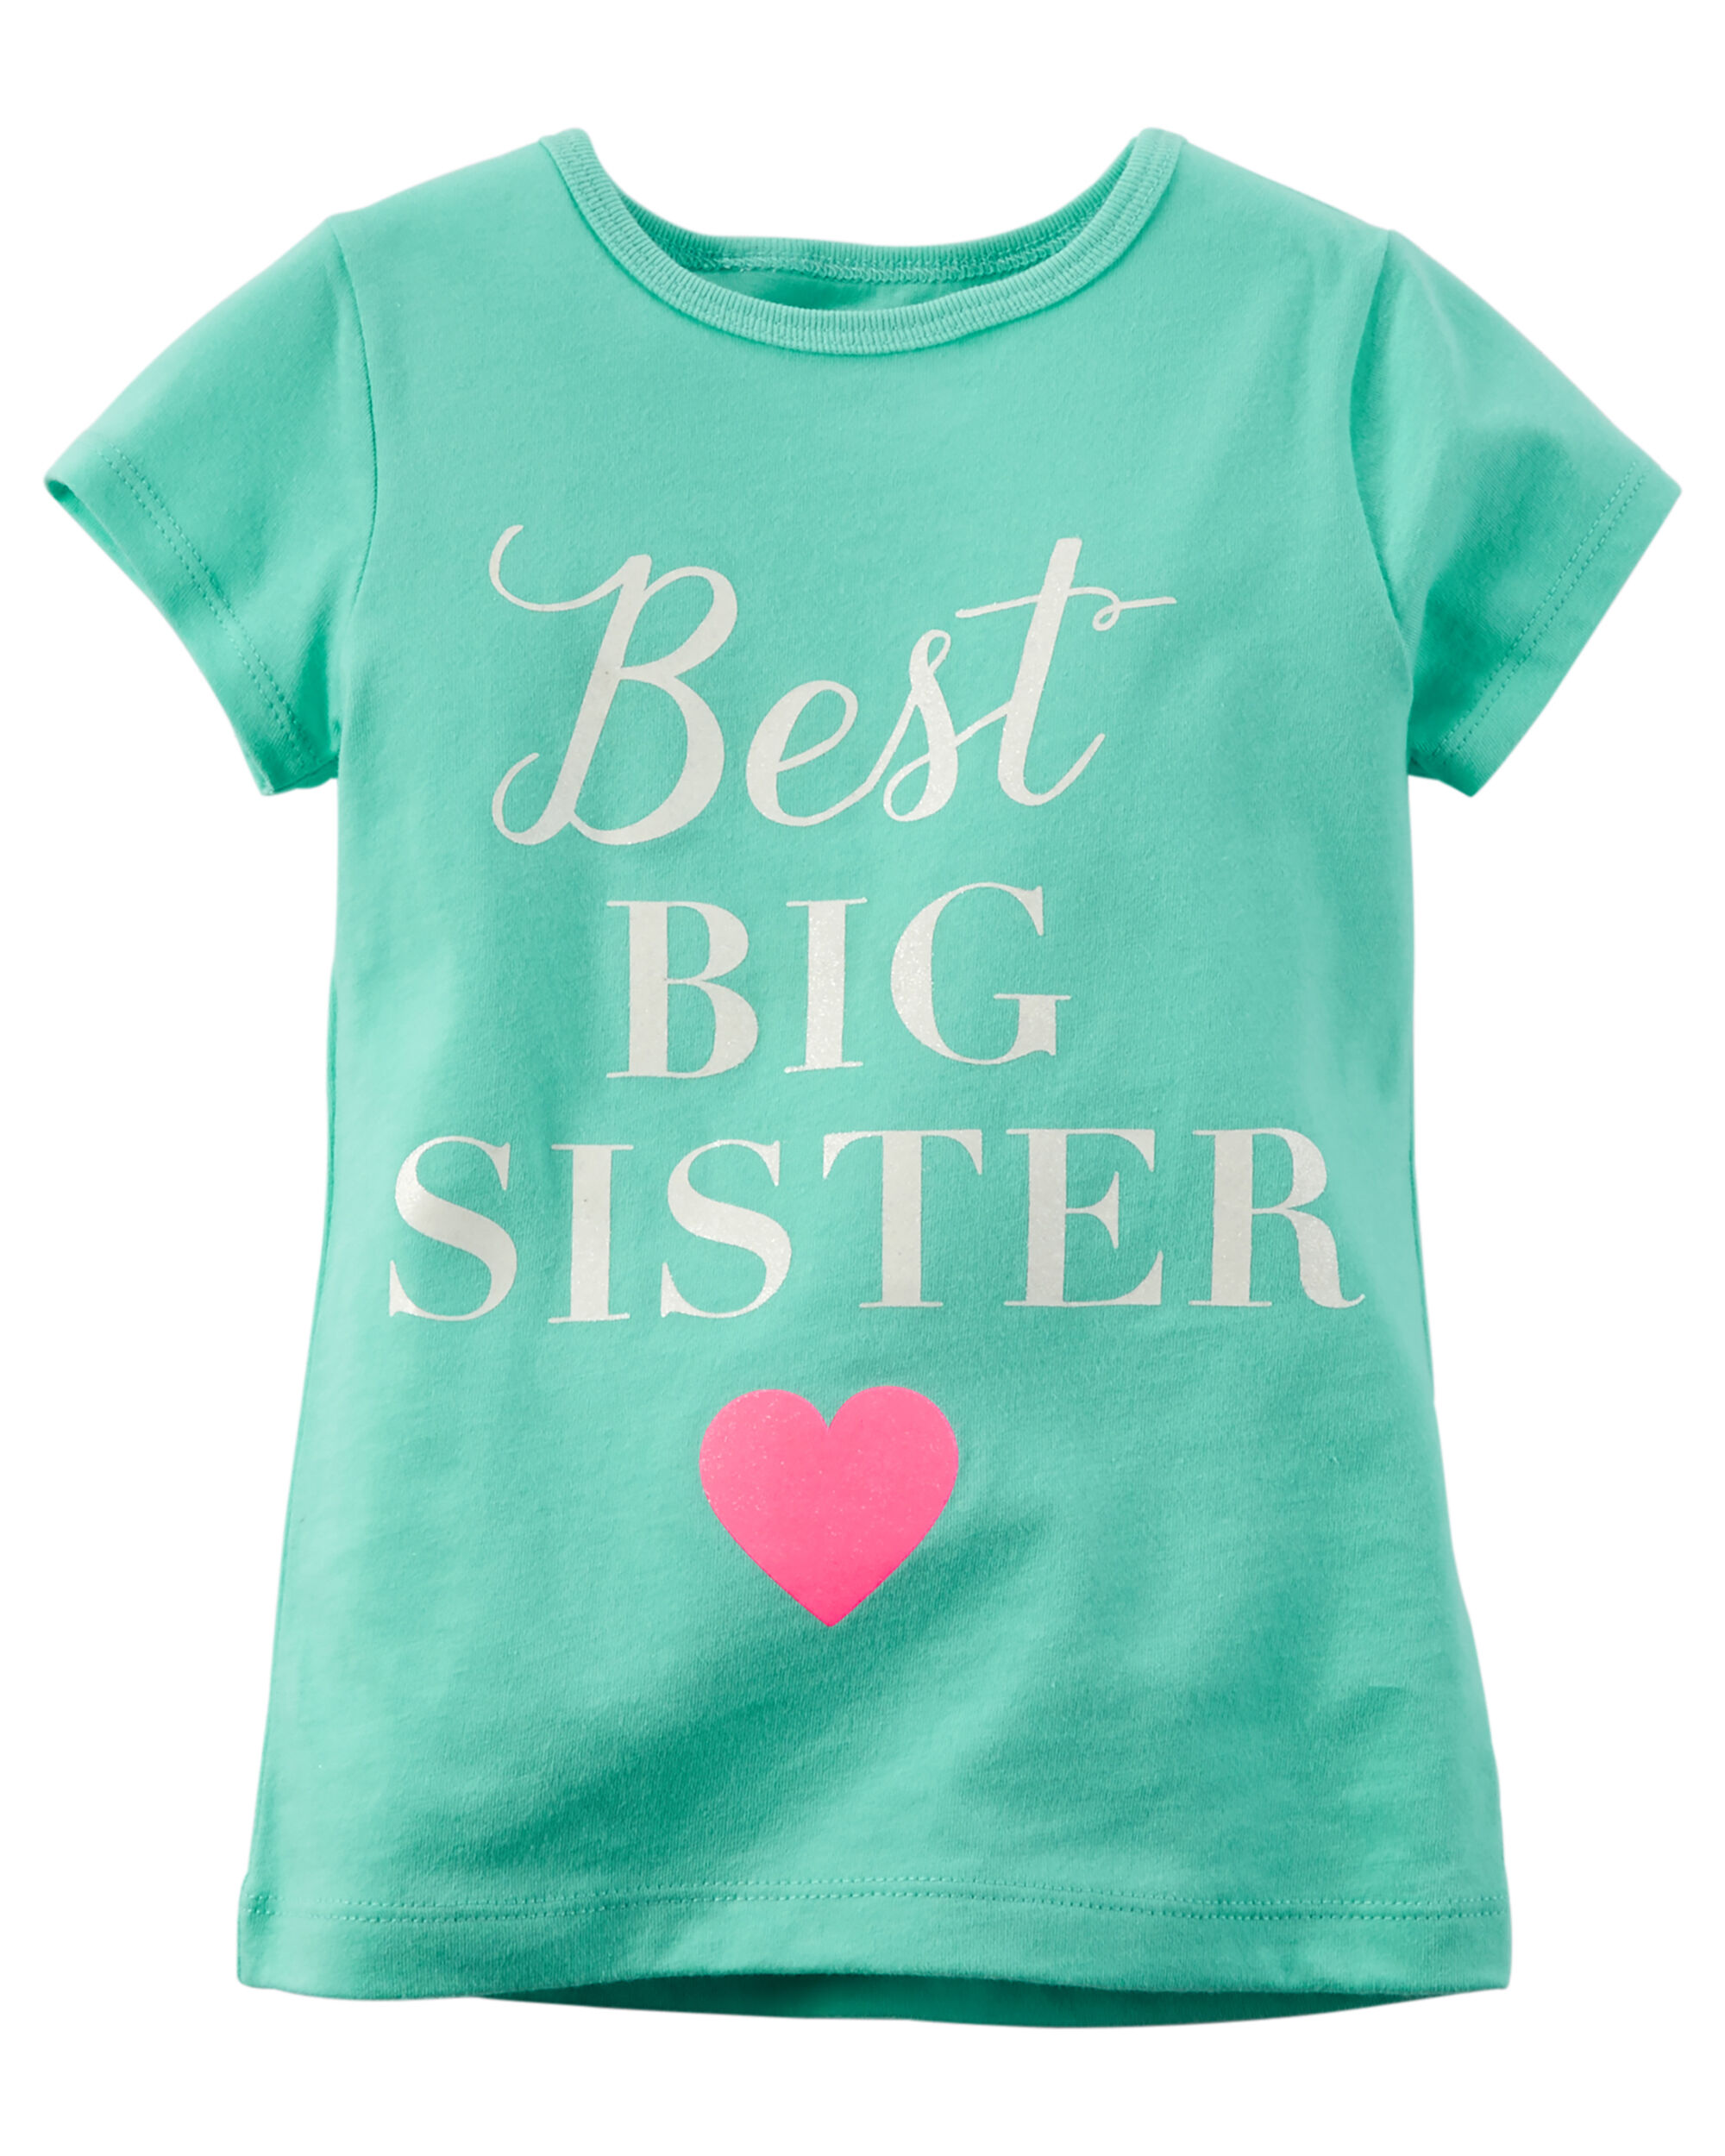 Shop for toddler big sister outfit online at Target. Free shipping on purchases over $35 and save 5% every day with your Target REDcard. buy online & pick up. Toddler Girls' Sister Short sleeve T - Shirt - Just One You® made by carter's Mint. Just One You made by carter's. out of 5 stars with 67 reviews. $